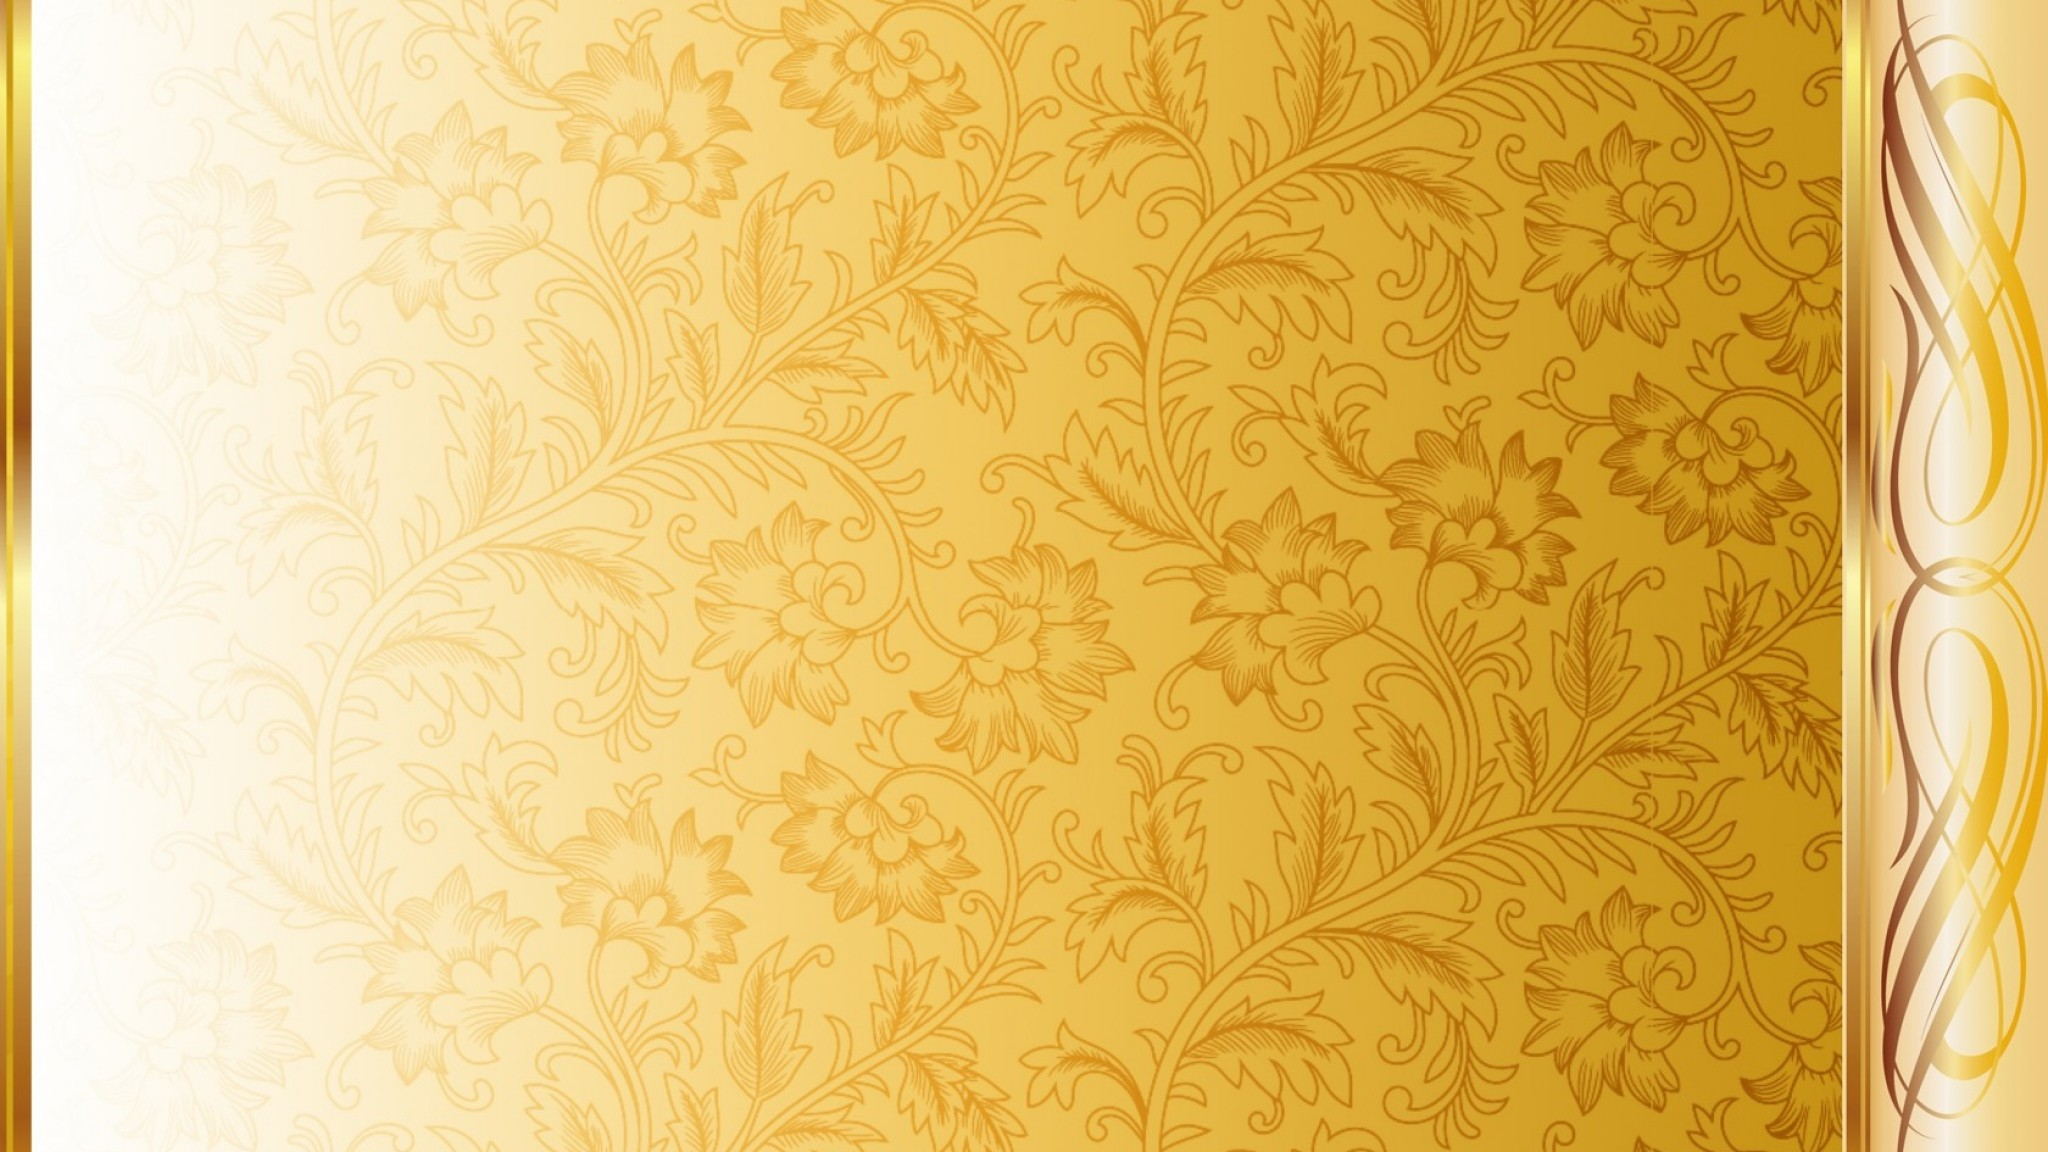 Gold Background Images HD Wallpapers Download Free Images Wallpaper [1000image.com]